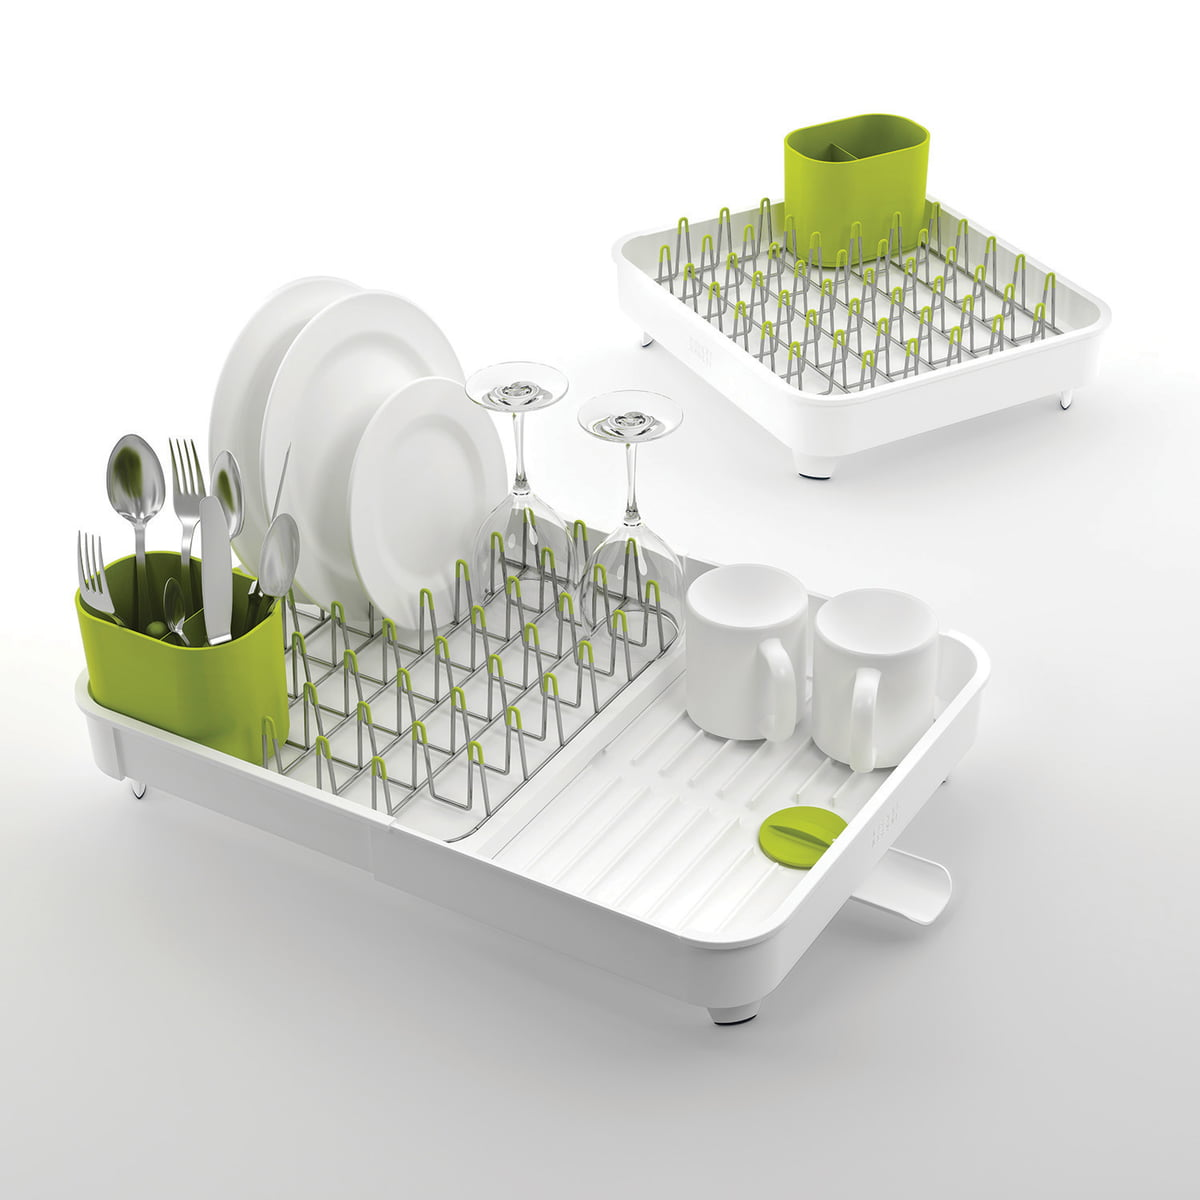 dish nz fishpond stainless original draining q rack from online co buy steel c kitchen